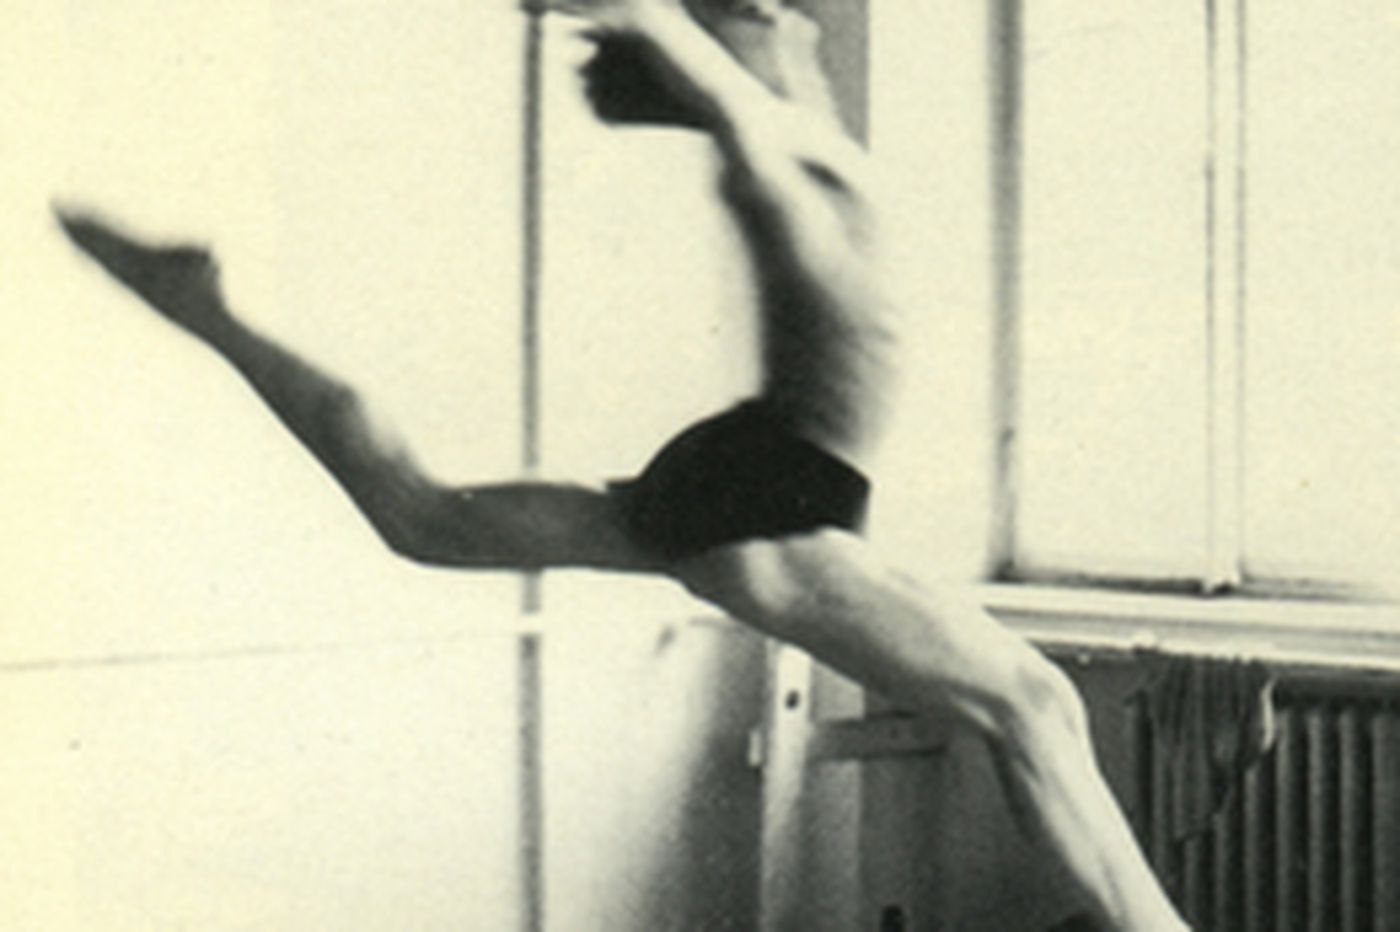 Like one of Nureyev's powerful leaps, the tale builds